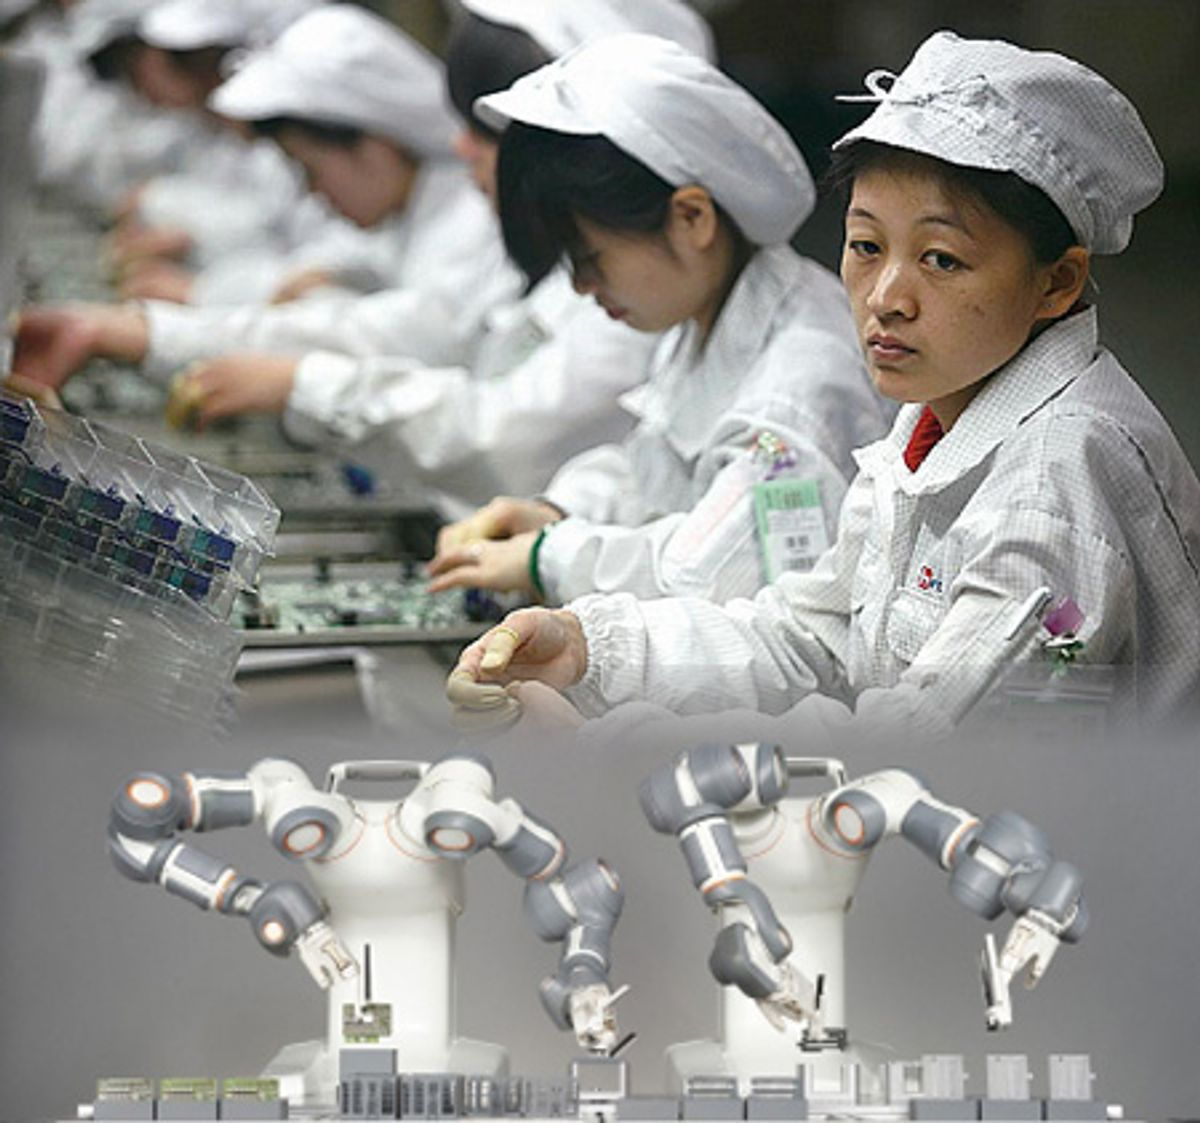 Foxconn To Replace Human Workers With One Million Robots